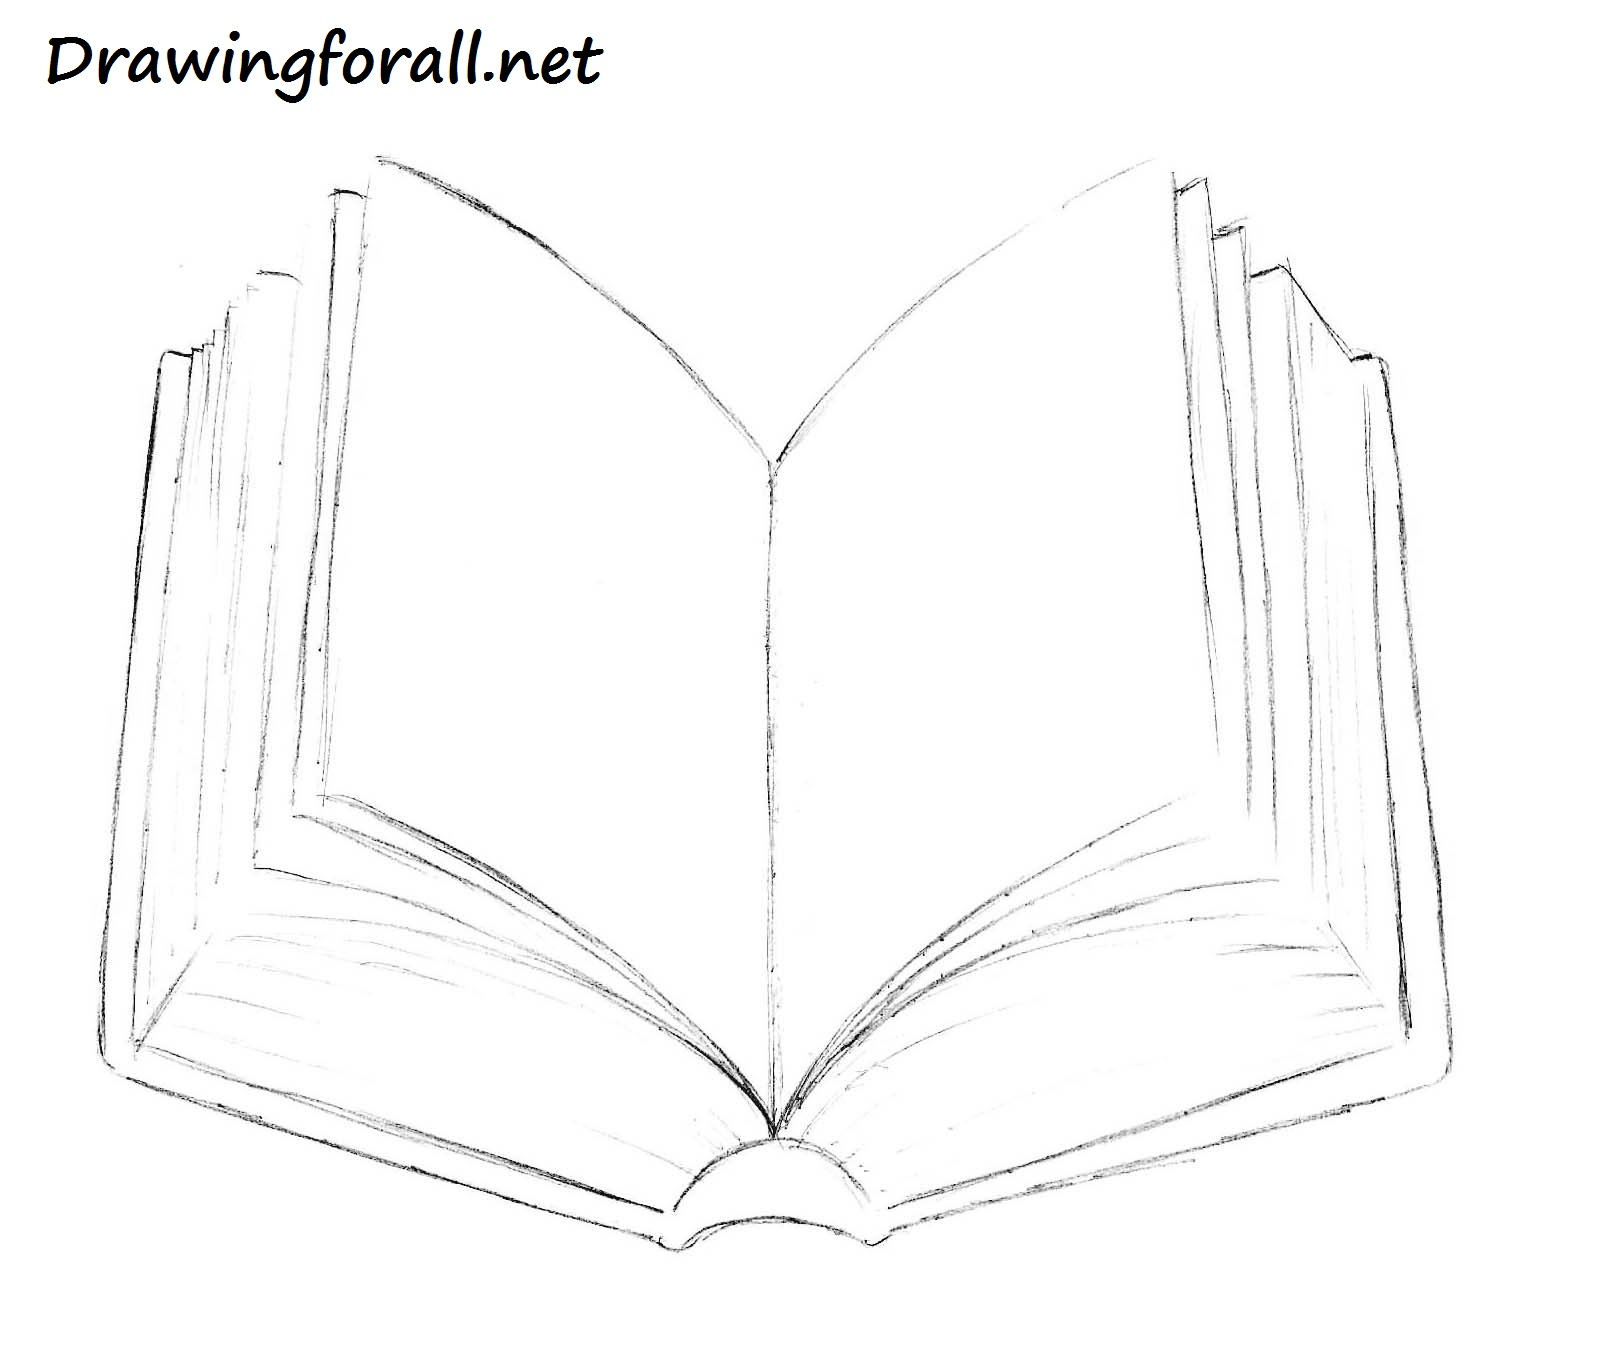 How to Draw a Book | DrawingForAll.net